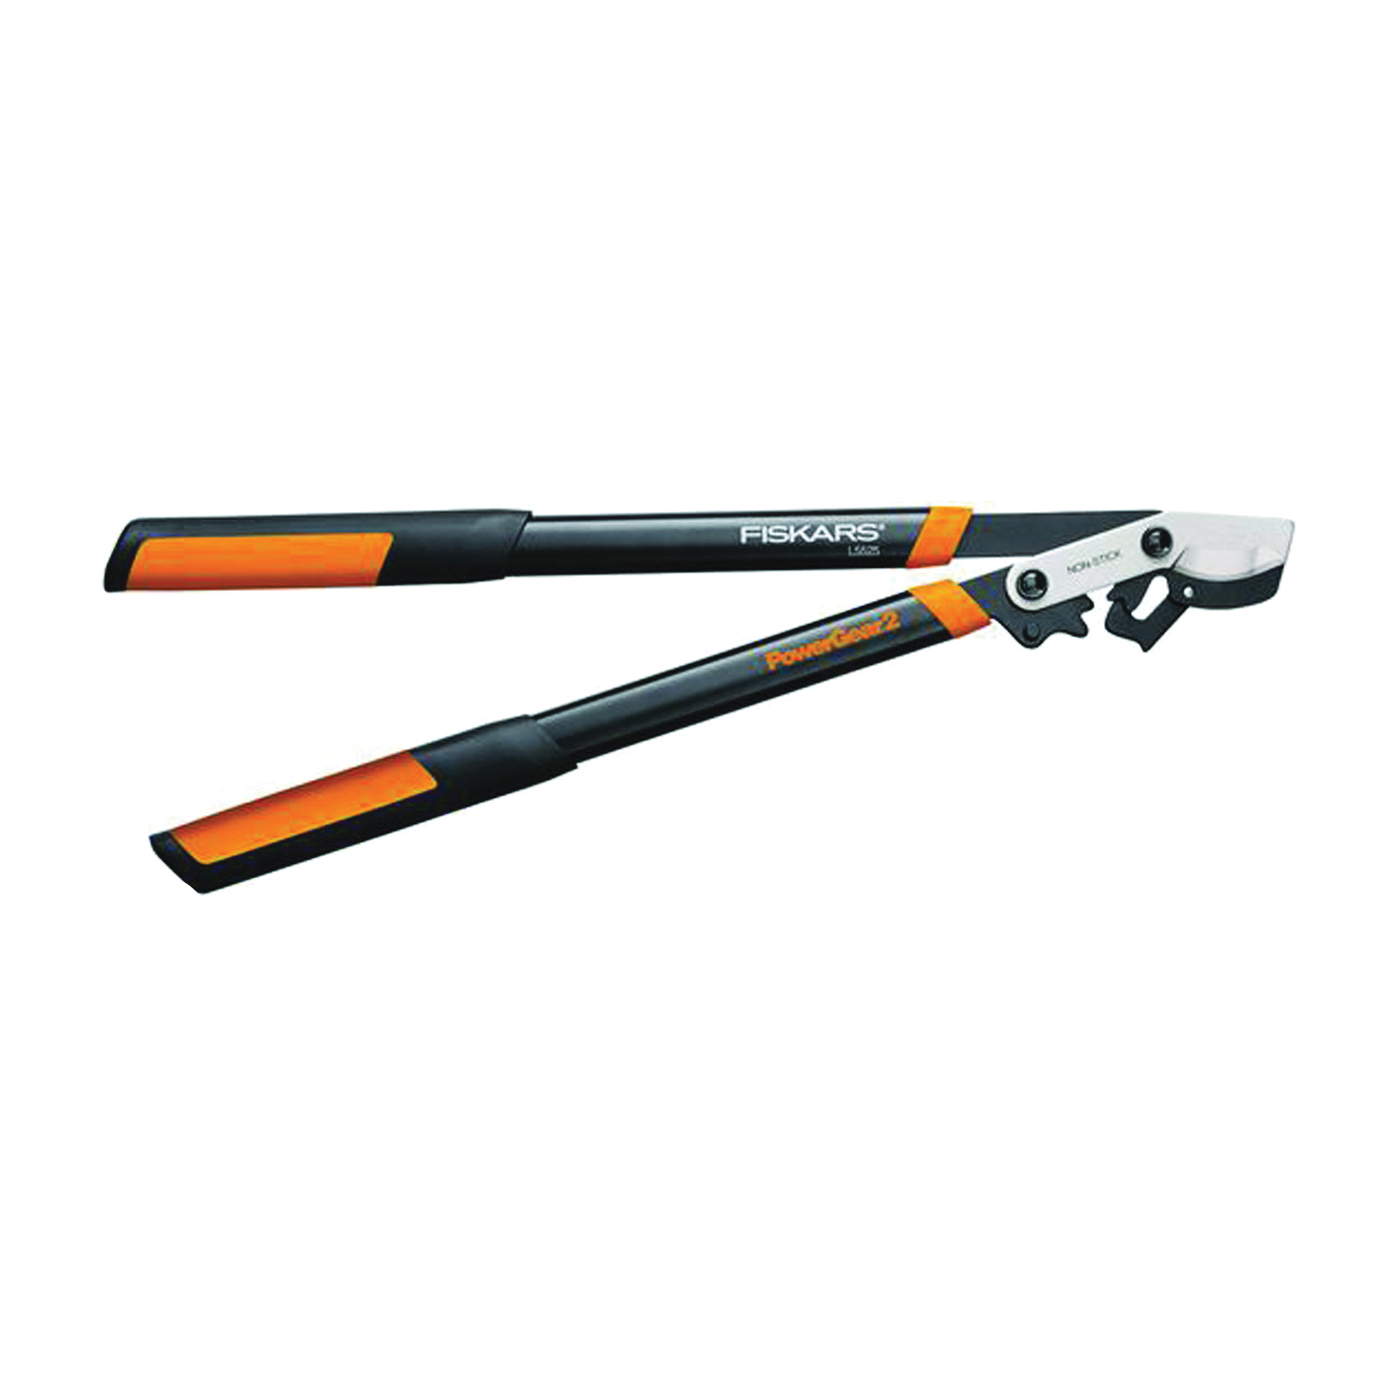 Picture of FISKARS L5525 Power Gear Lopper, 1-3/4 in Cutting Capacity, Bypass Blade, Steel Blade, Steel Handle, Round Handle